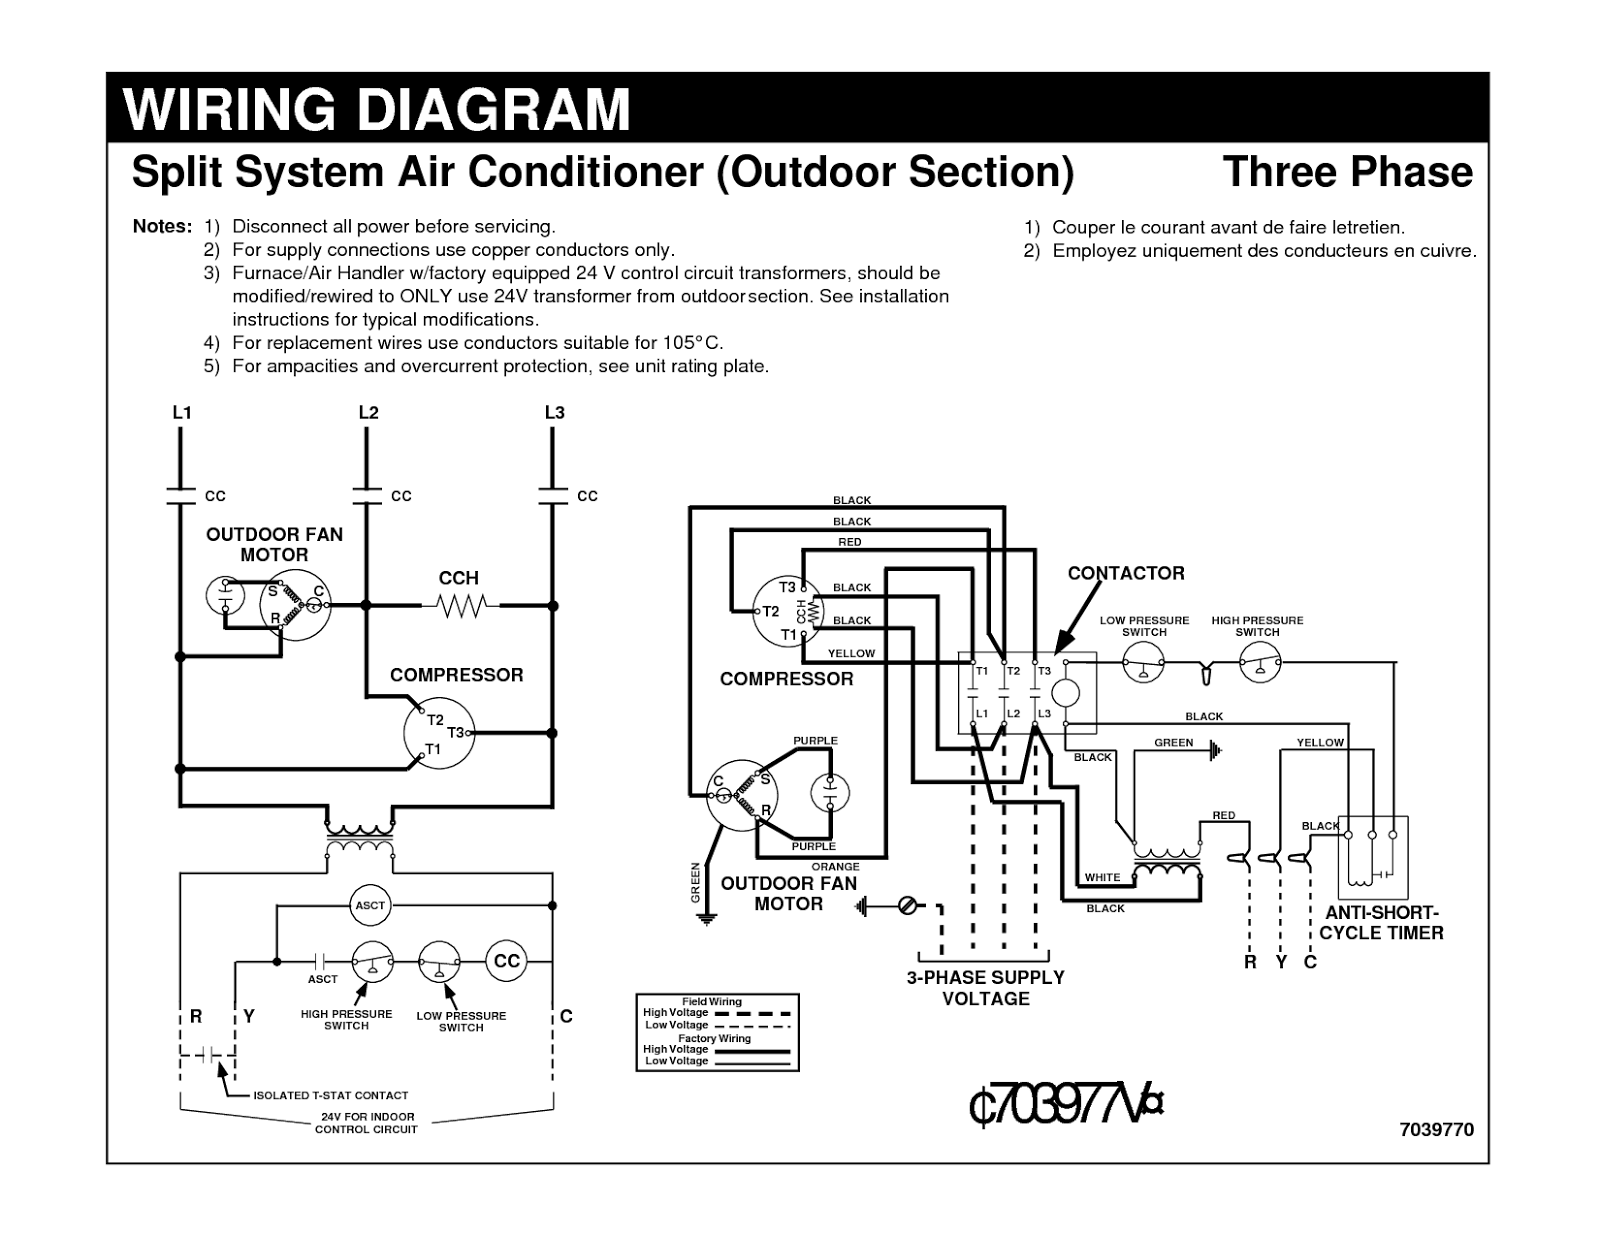 home air conditioner wiring color wiring diagram data Birdwell Air Conditioning Wiring Diagrams home ac wiring colors wiring diagram data central air conditioner wiring diagram home ac wiring colors